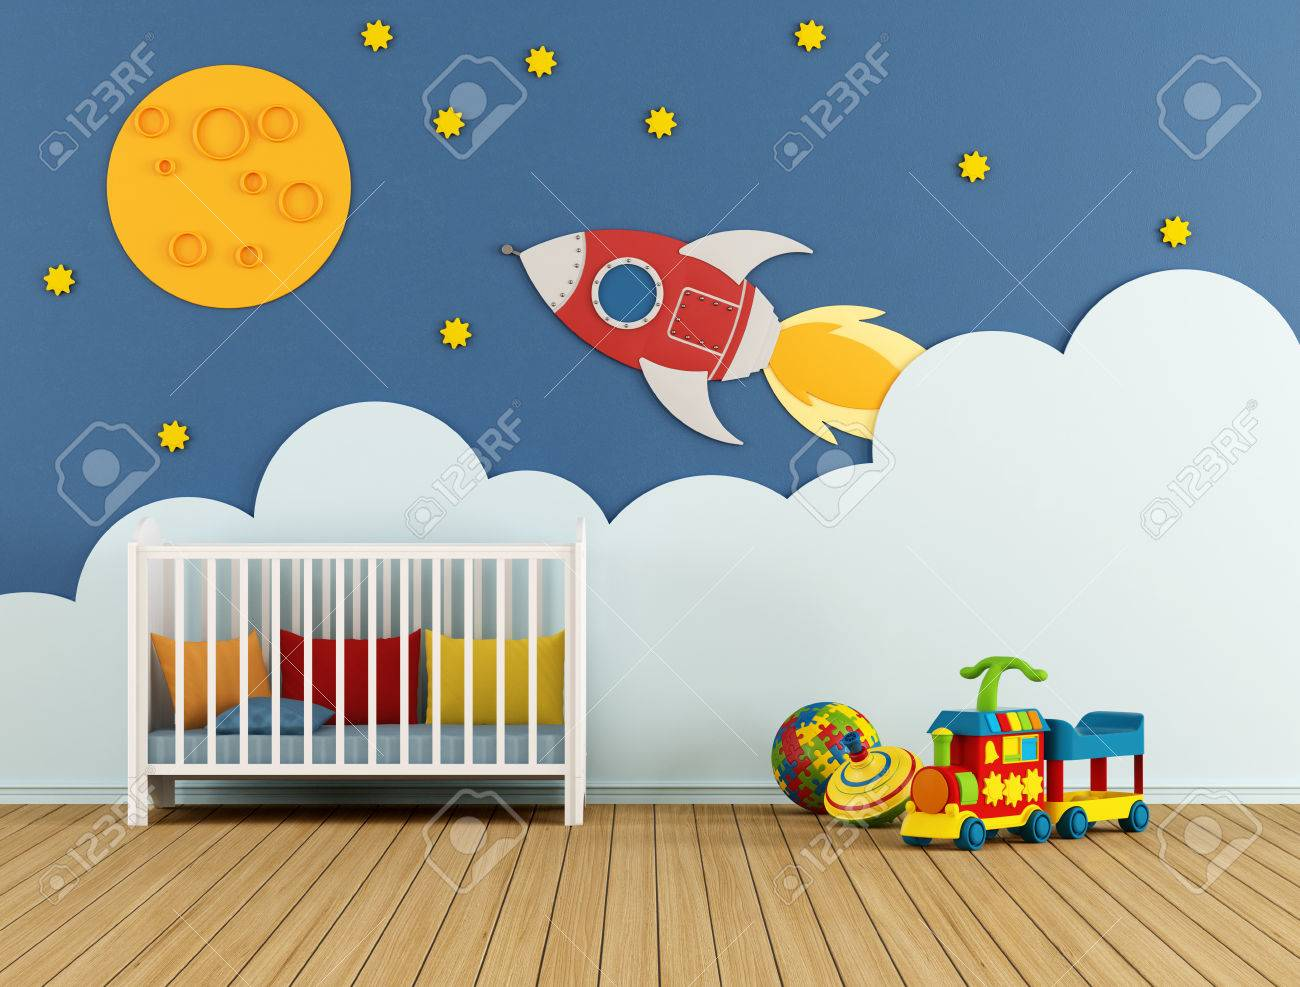 Baby room with cradle and decoration on wall - 3D Rendering Standard-Bild - 41972082